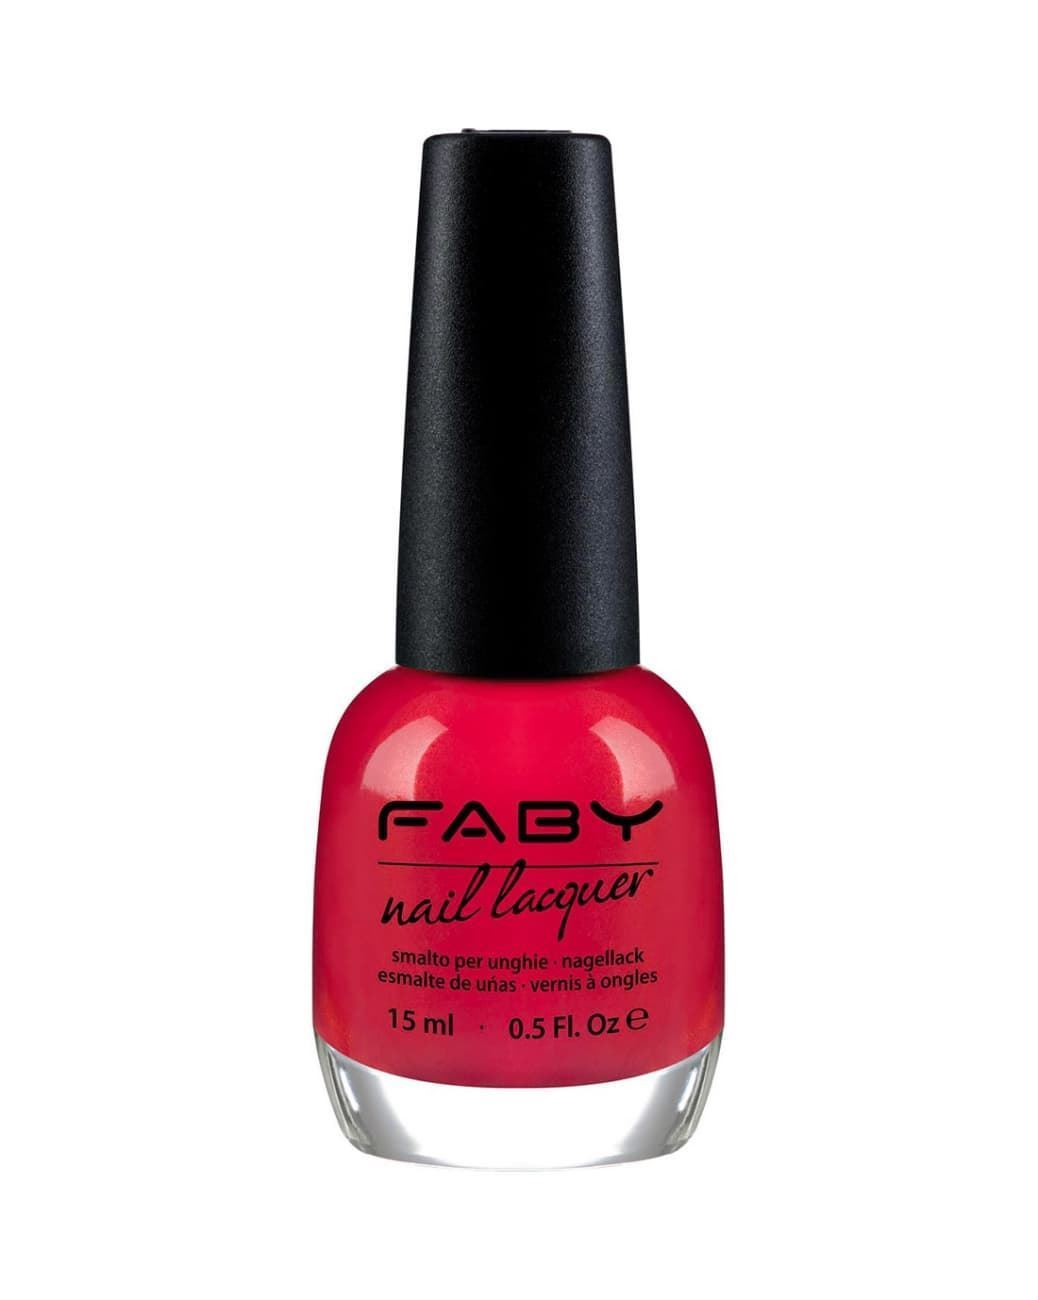 FABY - Esmalte LCH010 PASSAPORT FOR MY HEART 15ml - Imagen 1